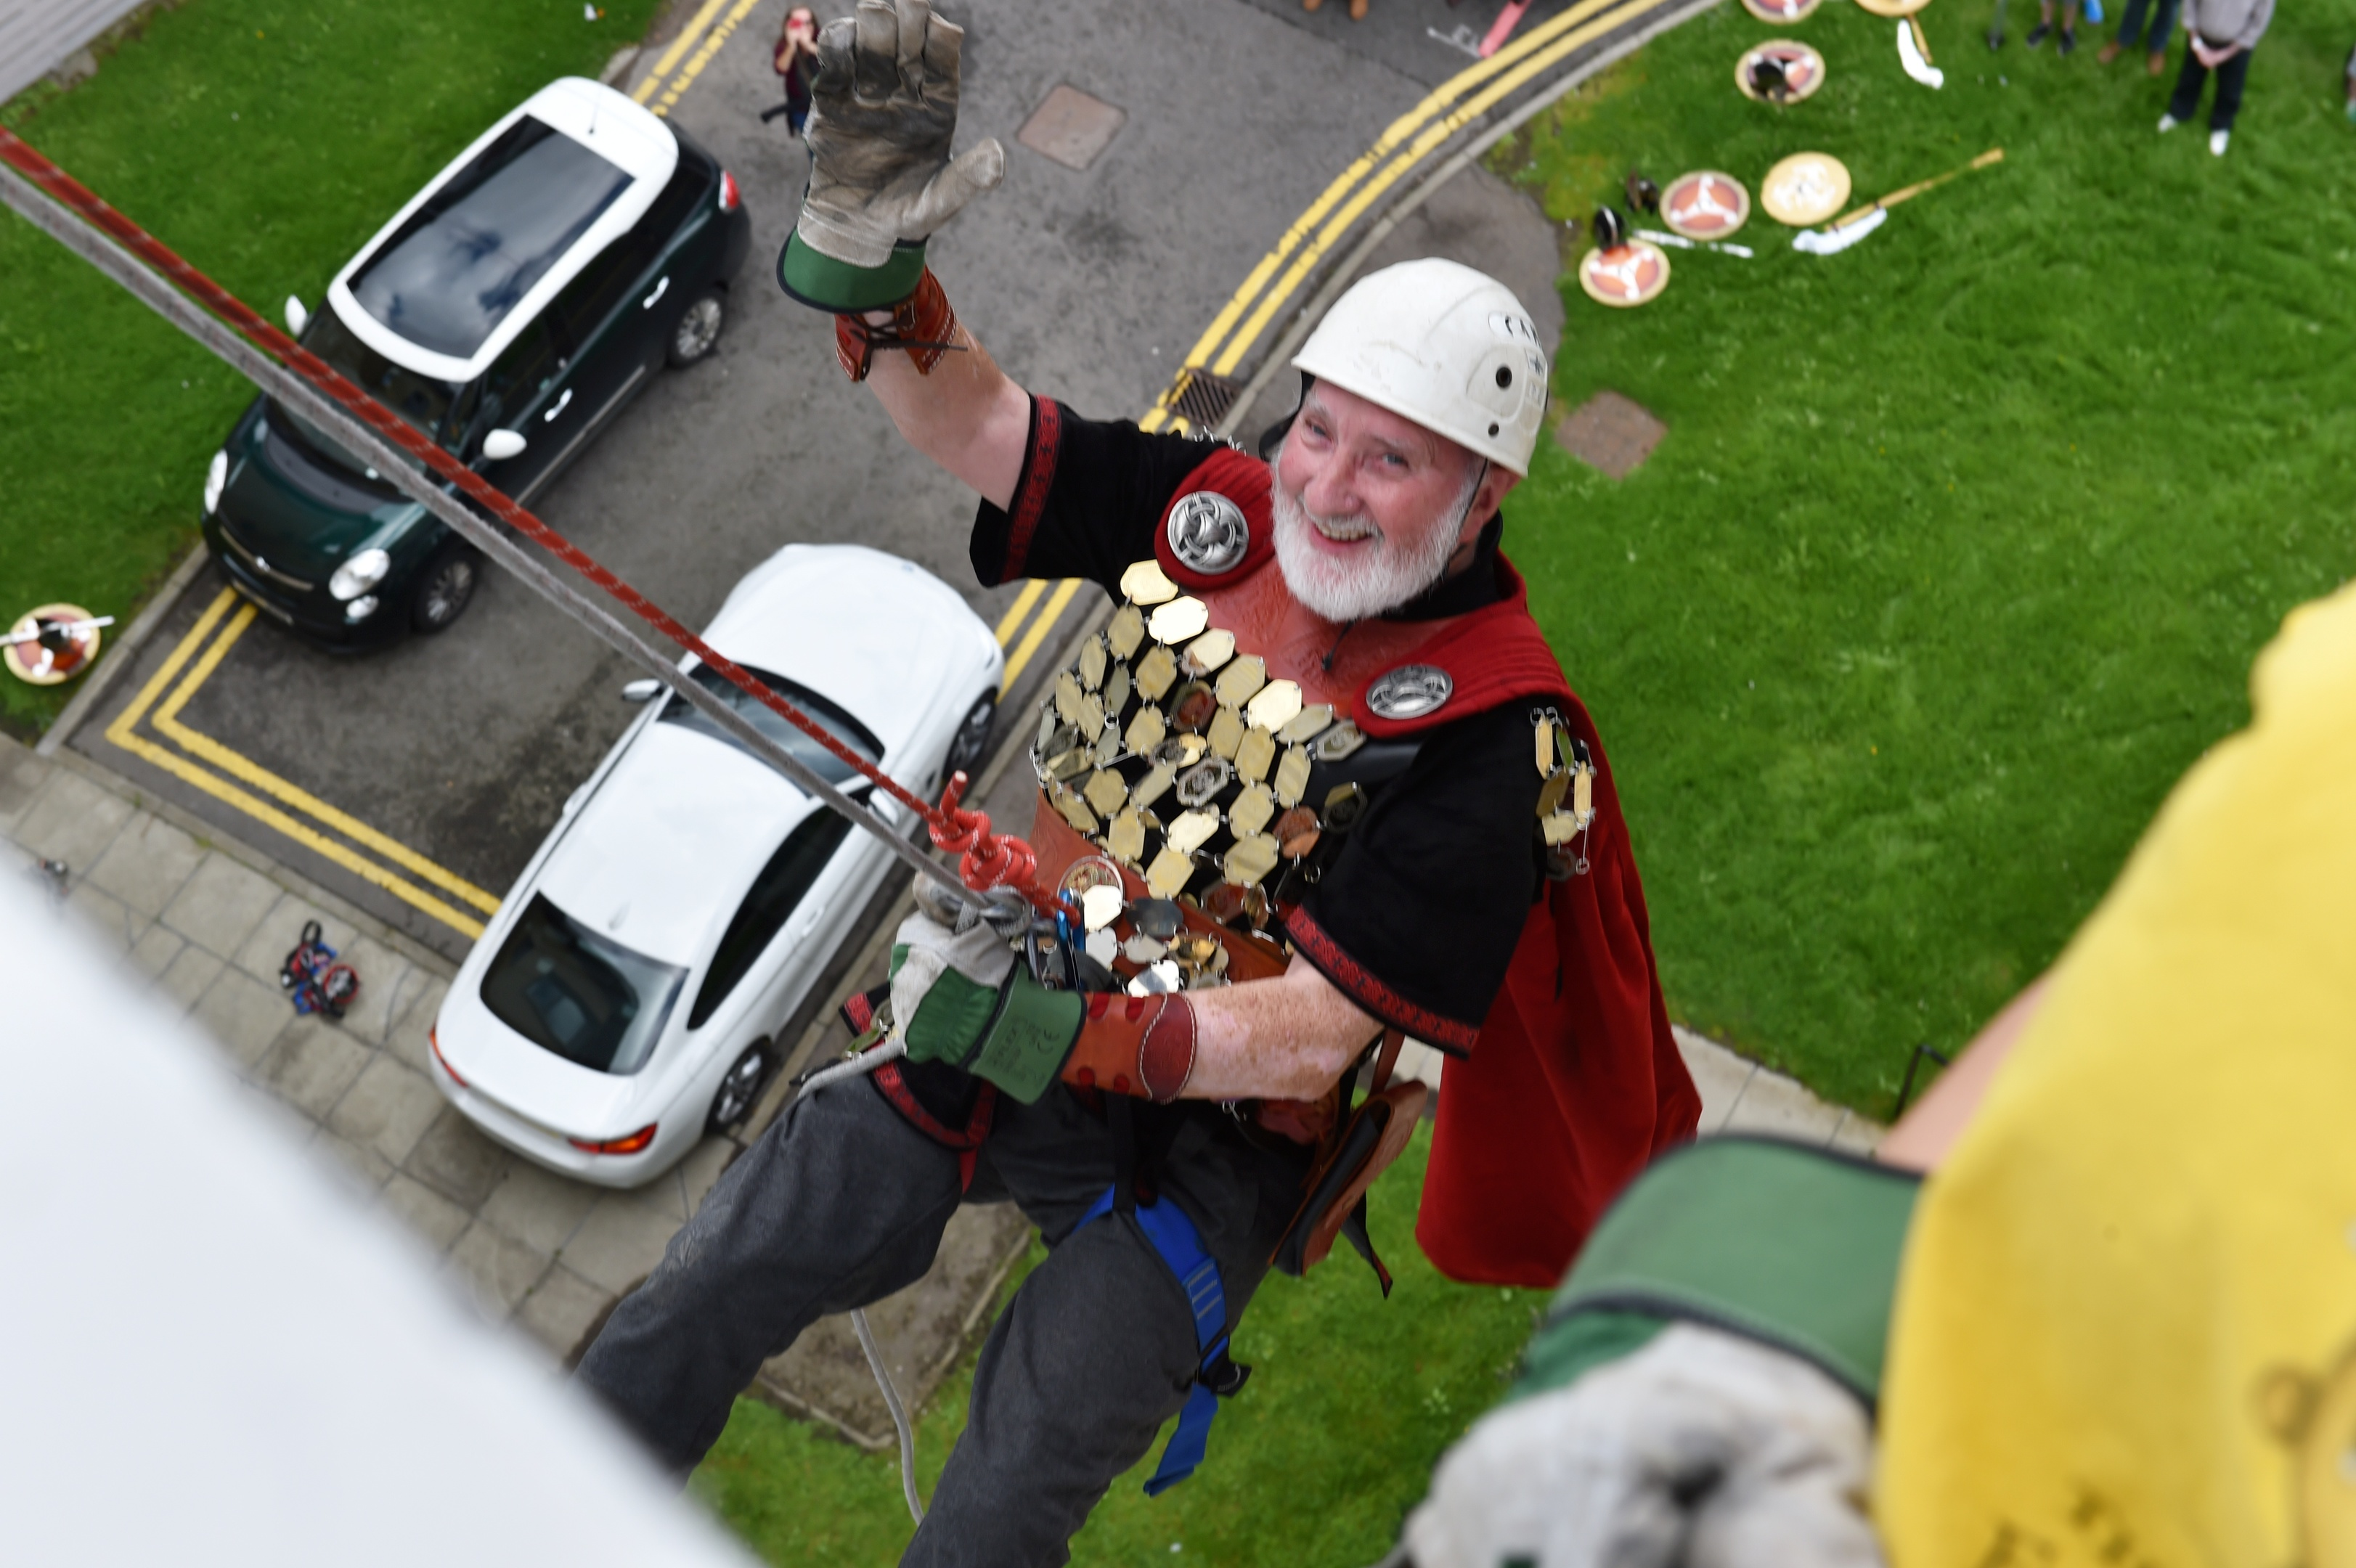 The annual Archie abseil was held at Aberdeen Children's Hospital.  76 year old Ralph Skene, a Shetland Viking absailed. Picture by COLIN RENNIE  August 12, 2017